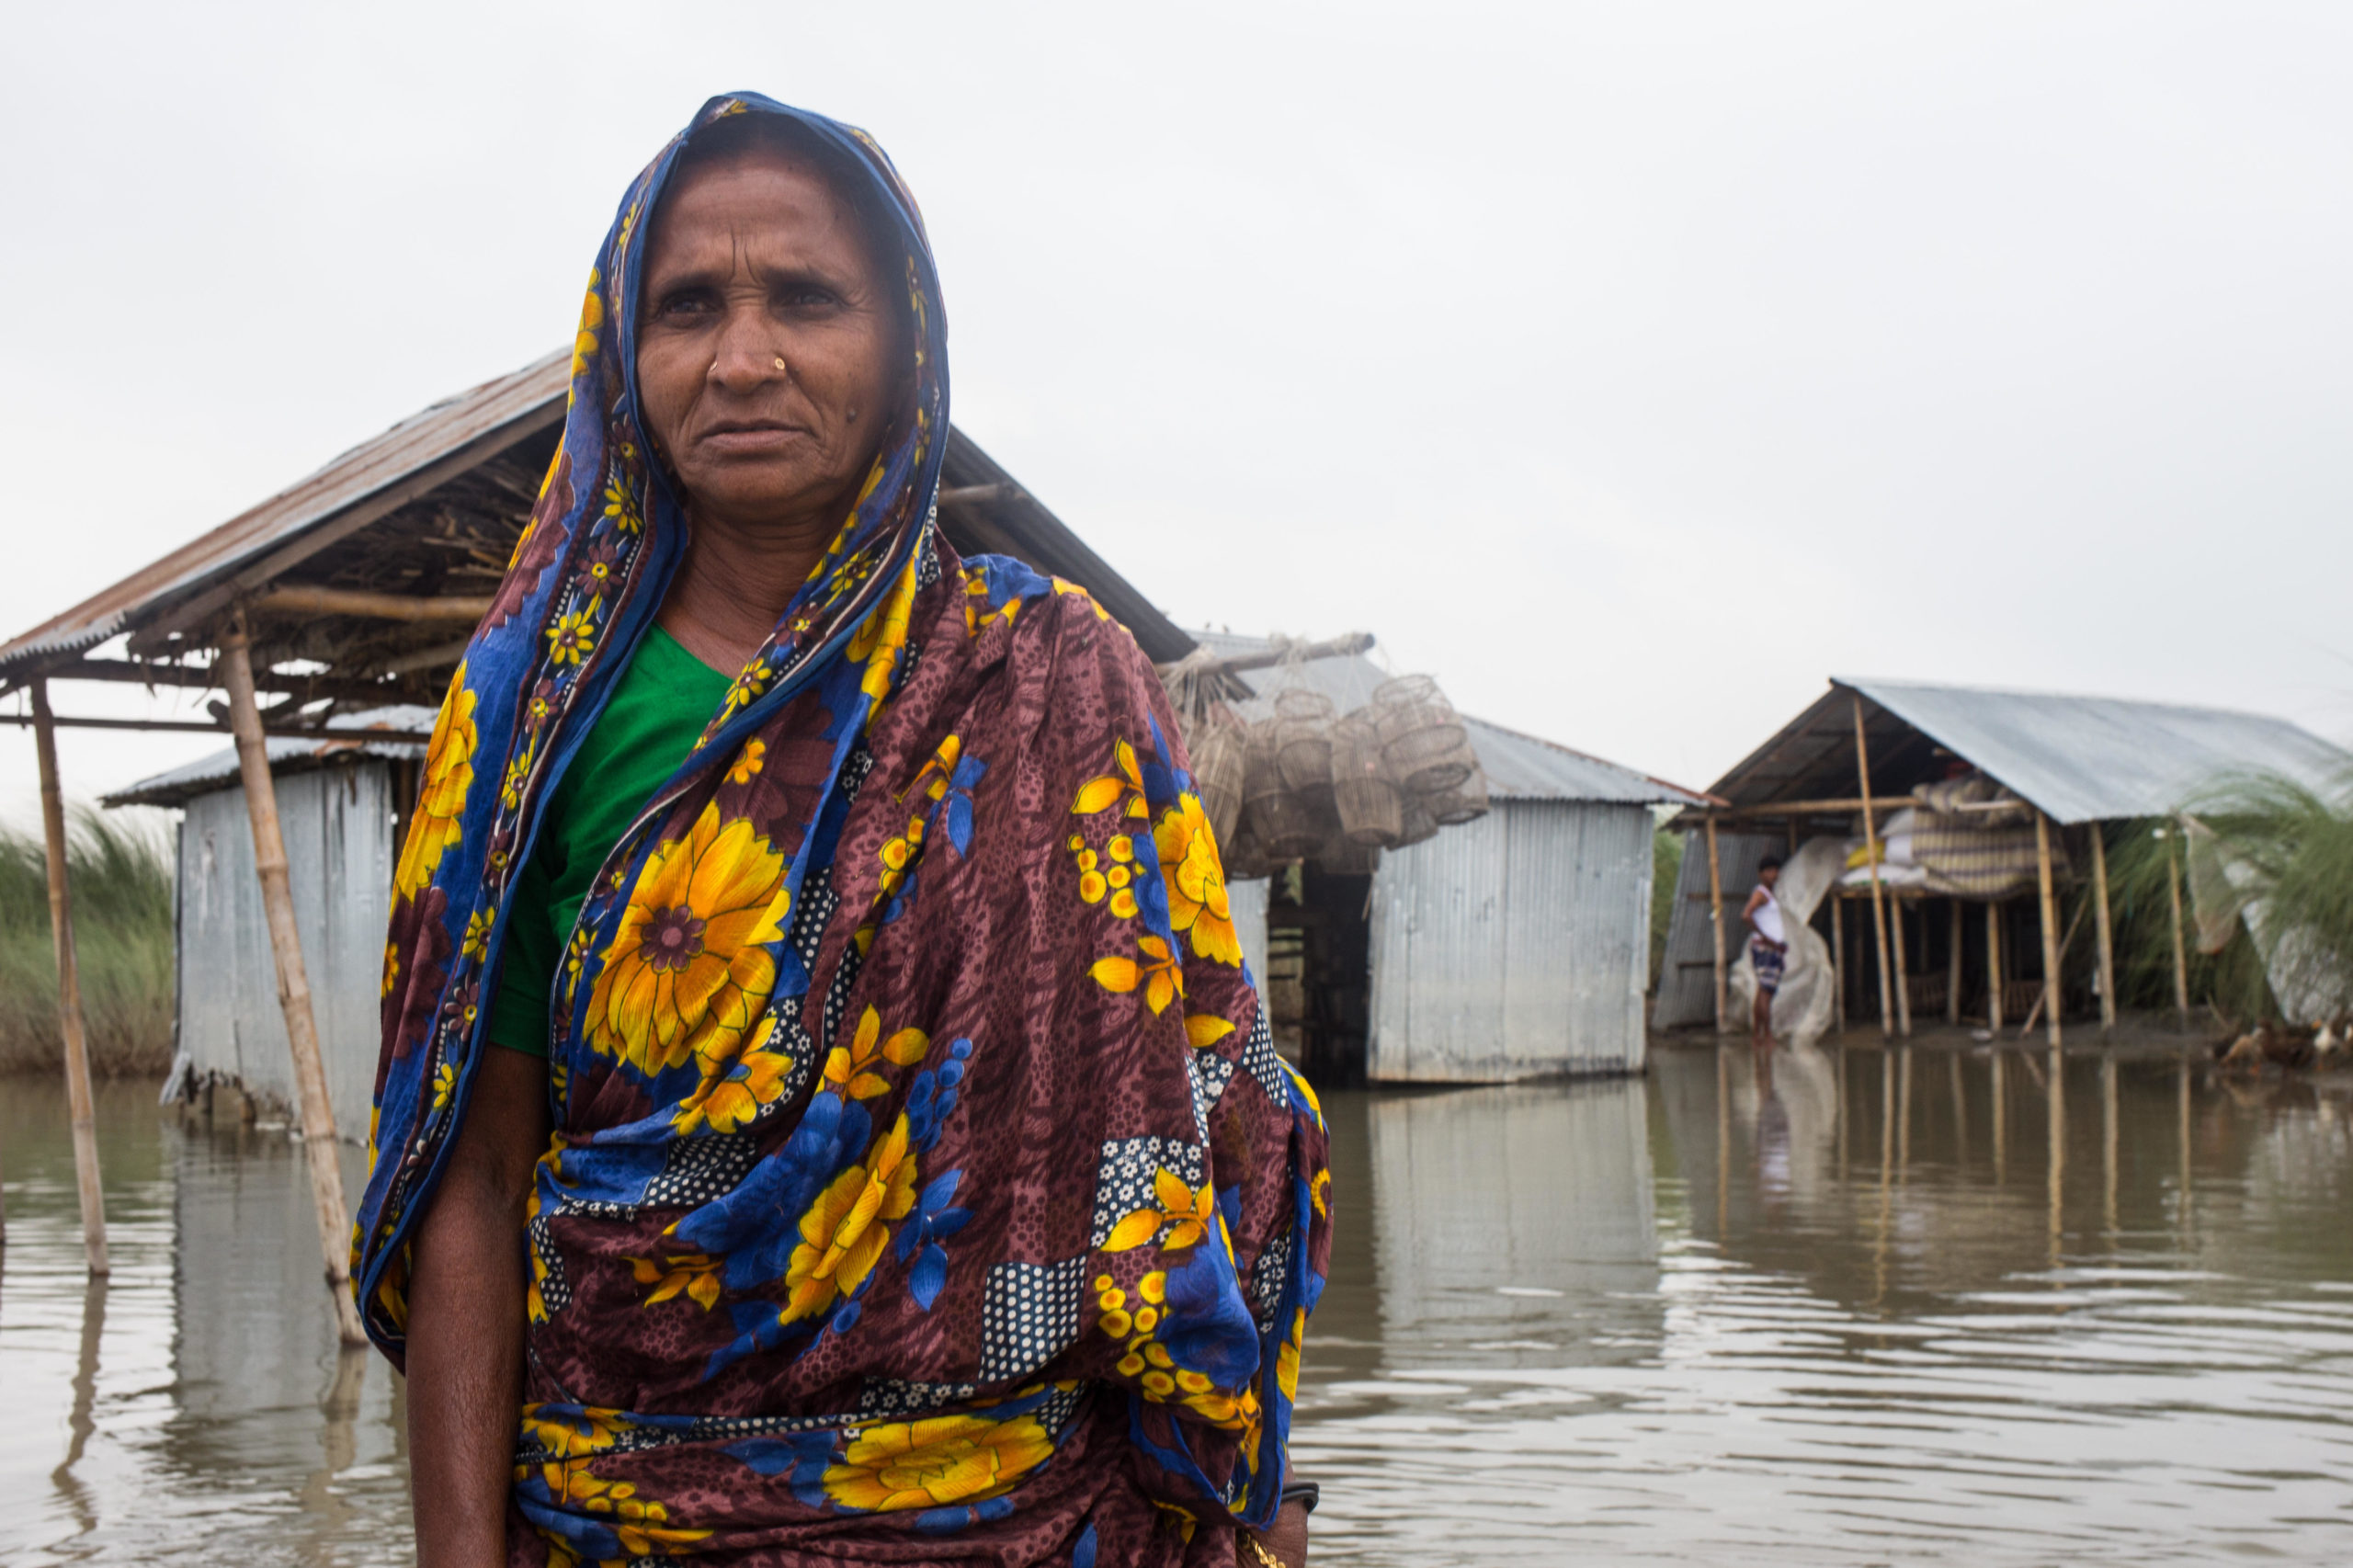 A Bangladeshi woman stands in front of flooded buildings in 2019. Research indicates that women, children and the elderly are most vulnerable to poor mental health after disasters. (Image: Md. Rakibul Hasan / Alamy)